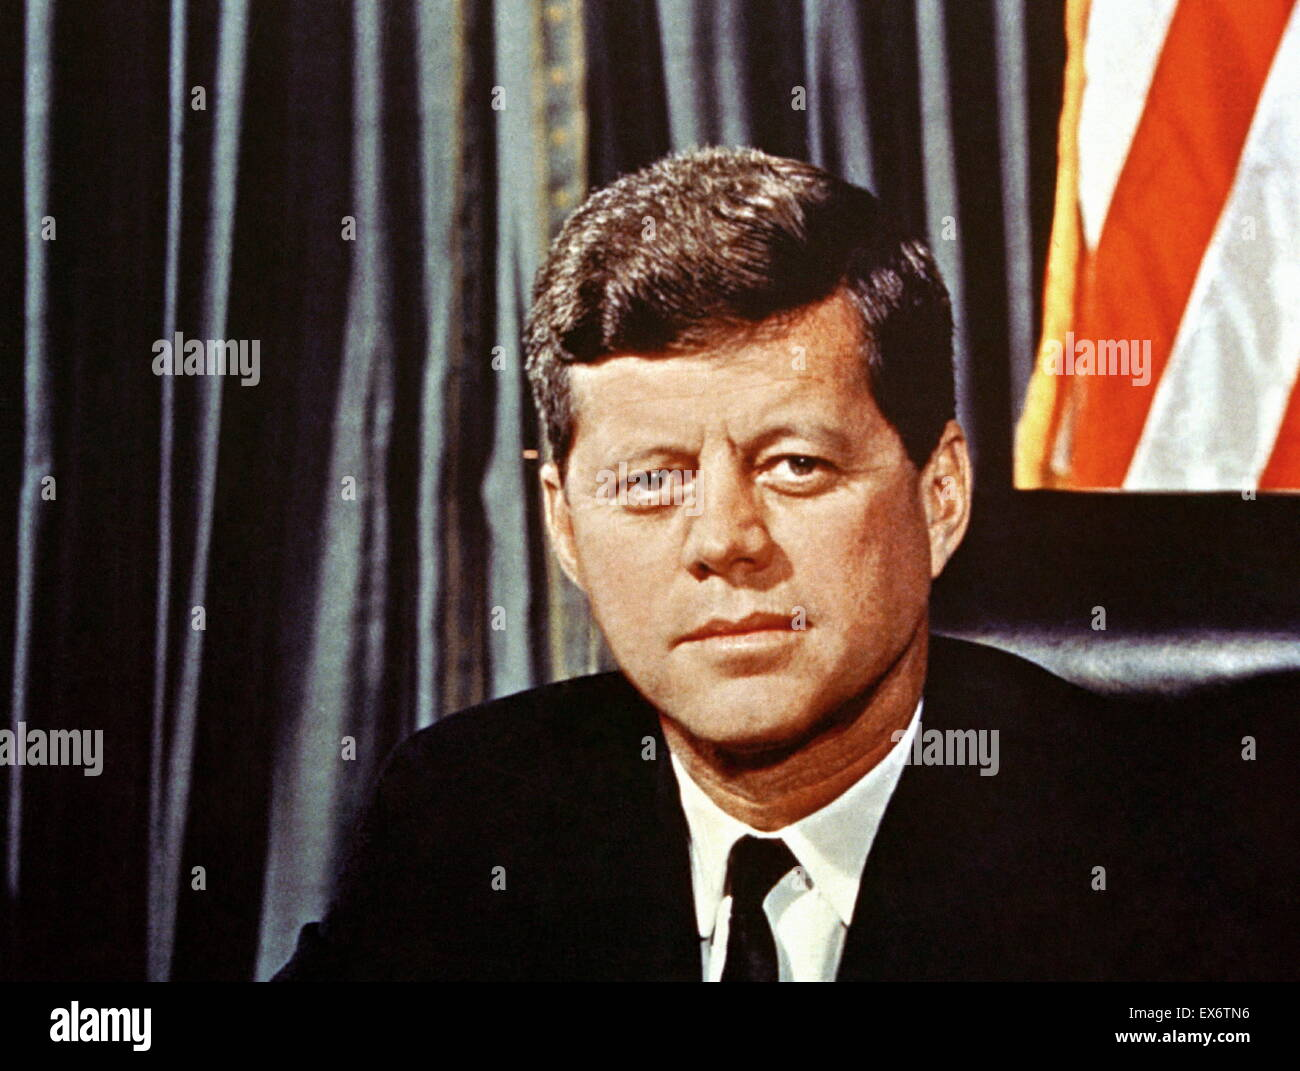 John F Kennedy President of the USA 1961-1963 - Stock Image